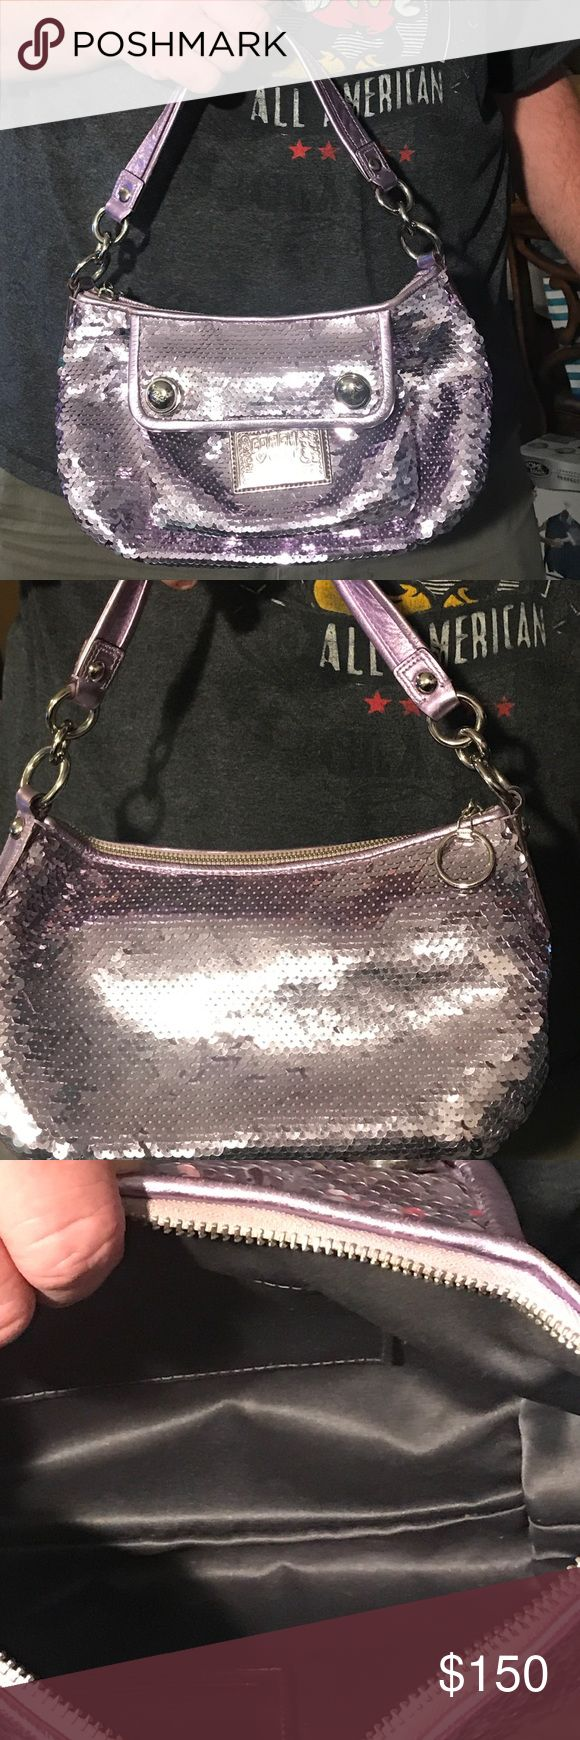 Lilac coach poppy groovy sequin bag This is a lilac coach sequin lilac groovy bag in great condition Coach Bags Satchels